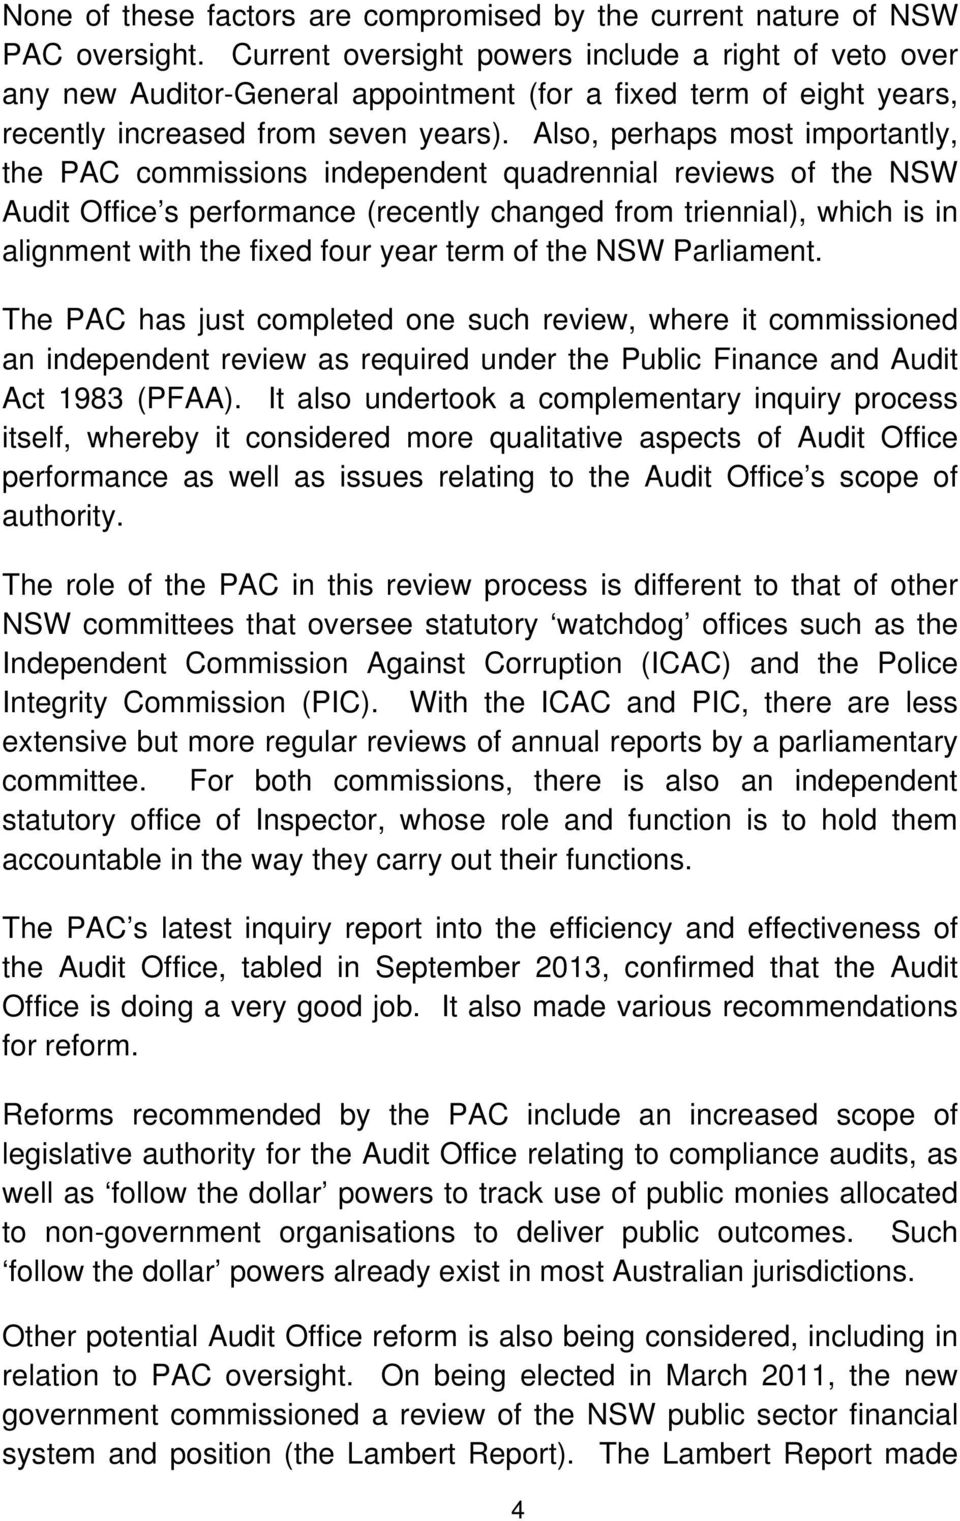 Also, perhaps most importantly, the PAC commissions independent quadrennial reviews of the NSW Audit Office s performance (recently changed from triennial), which is in alignment with the fixed four